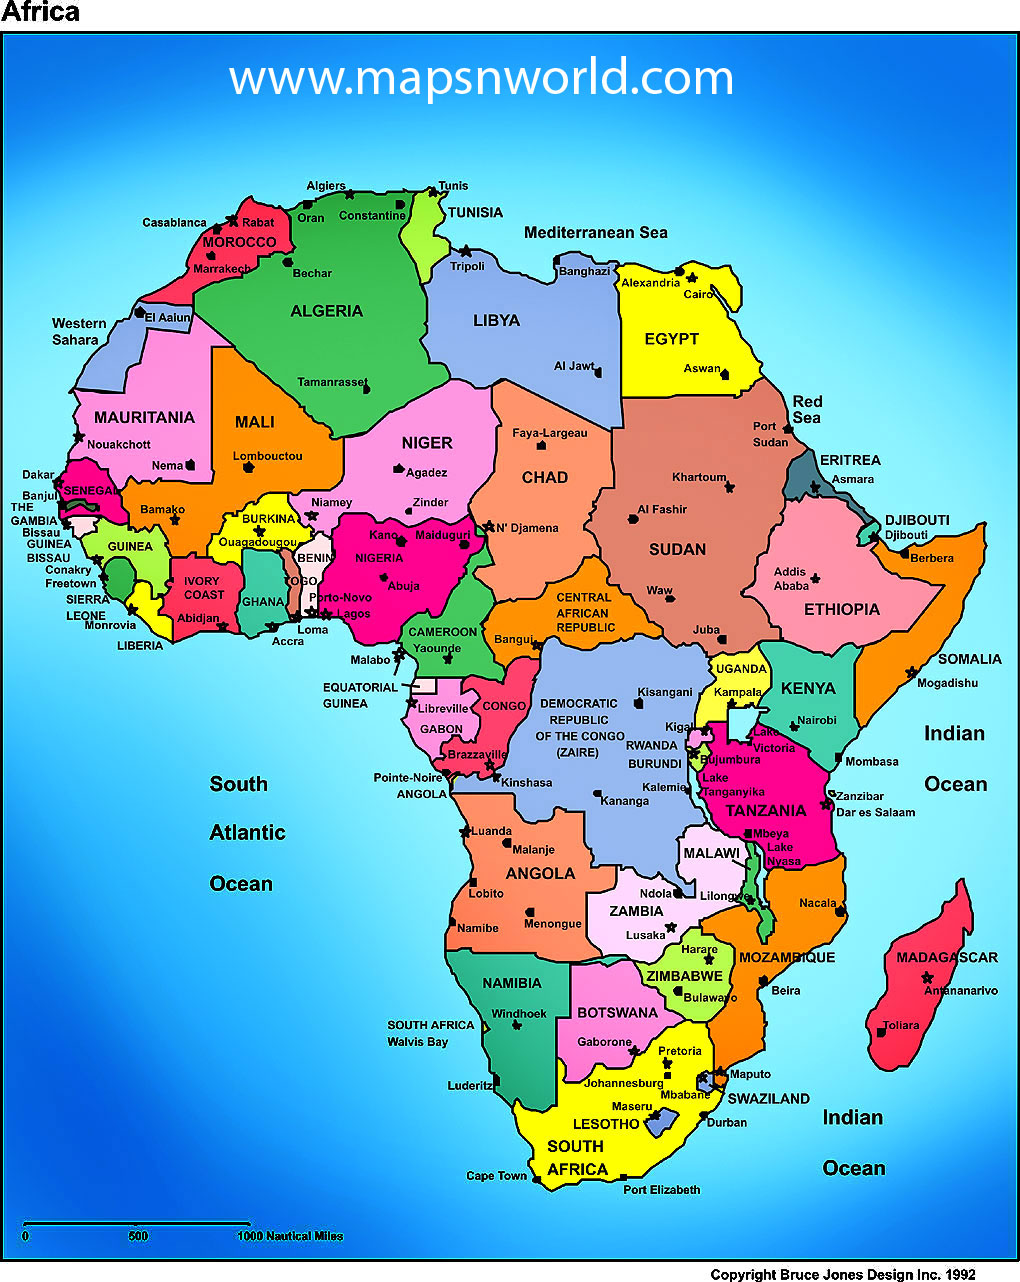 My 7th grade social studies experience: Political Map of Africa